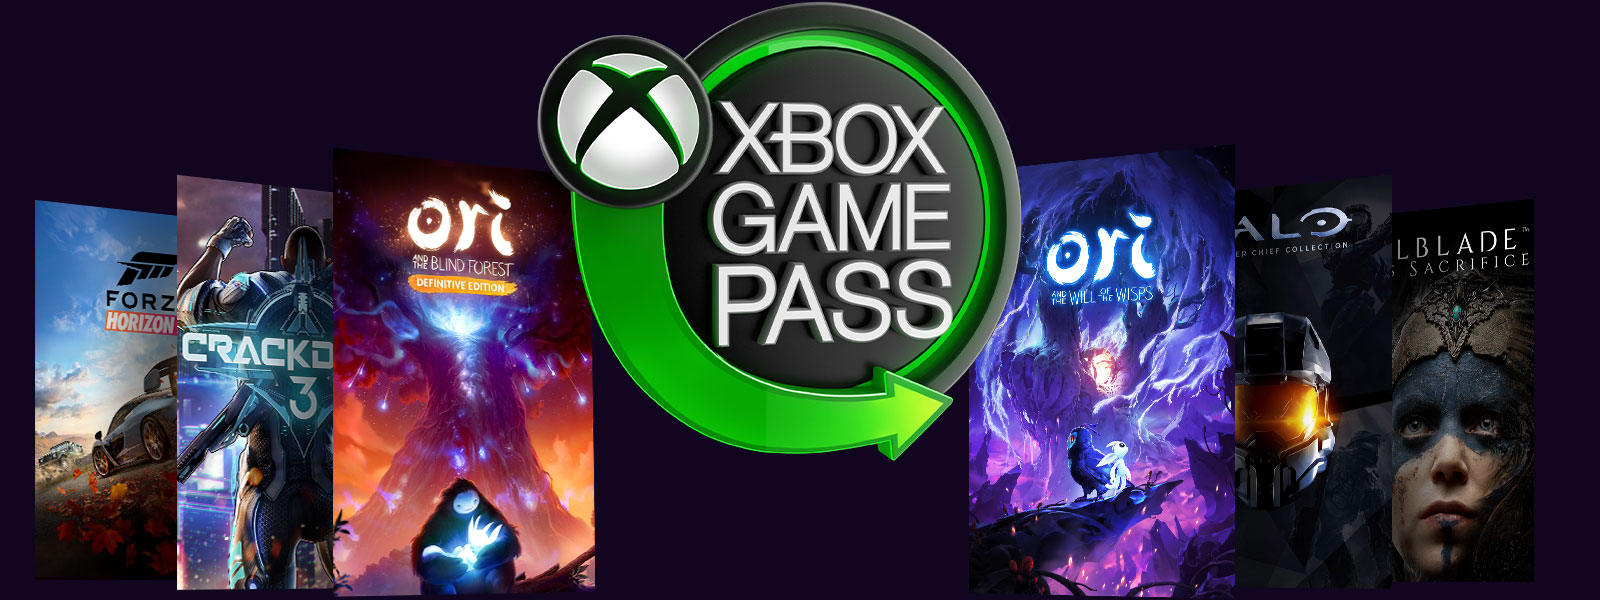 Λογότυπο Xbox Game Pass με box shot των Ori and the Will of the Wisps, Ori and the Blind Forest, Crackdown 3, Halo, Forza Horizon 4 και Hellblade